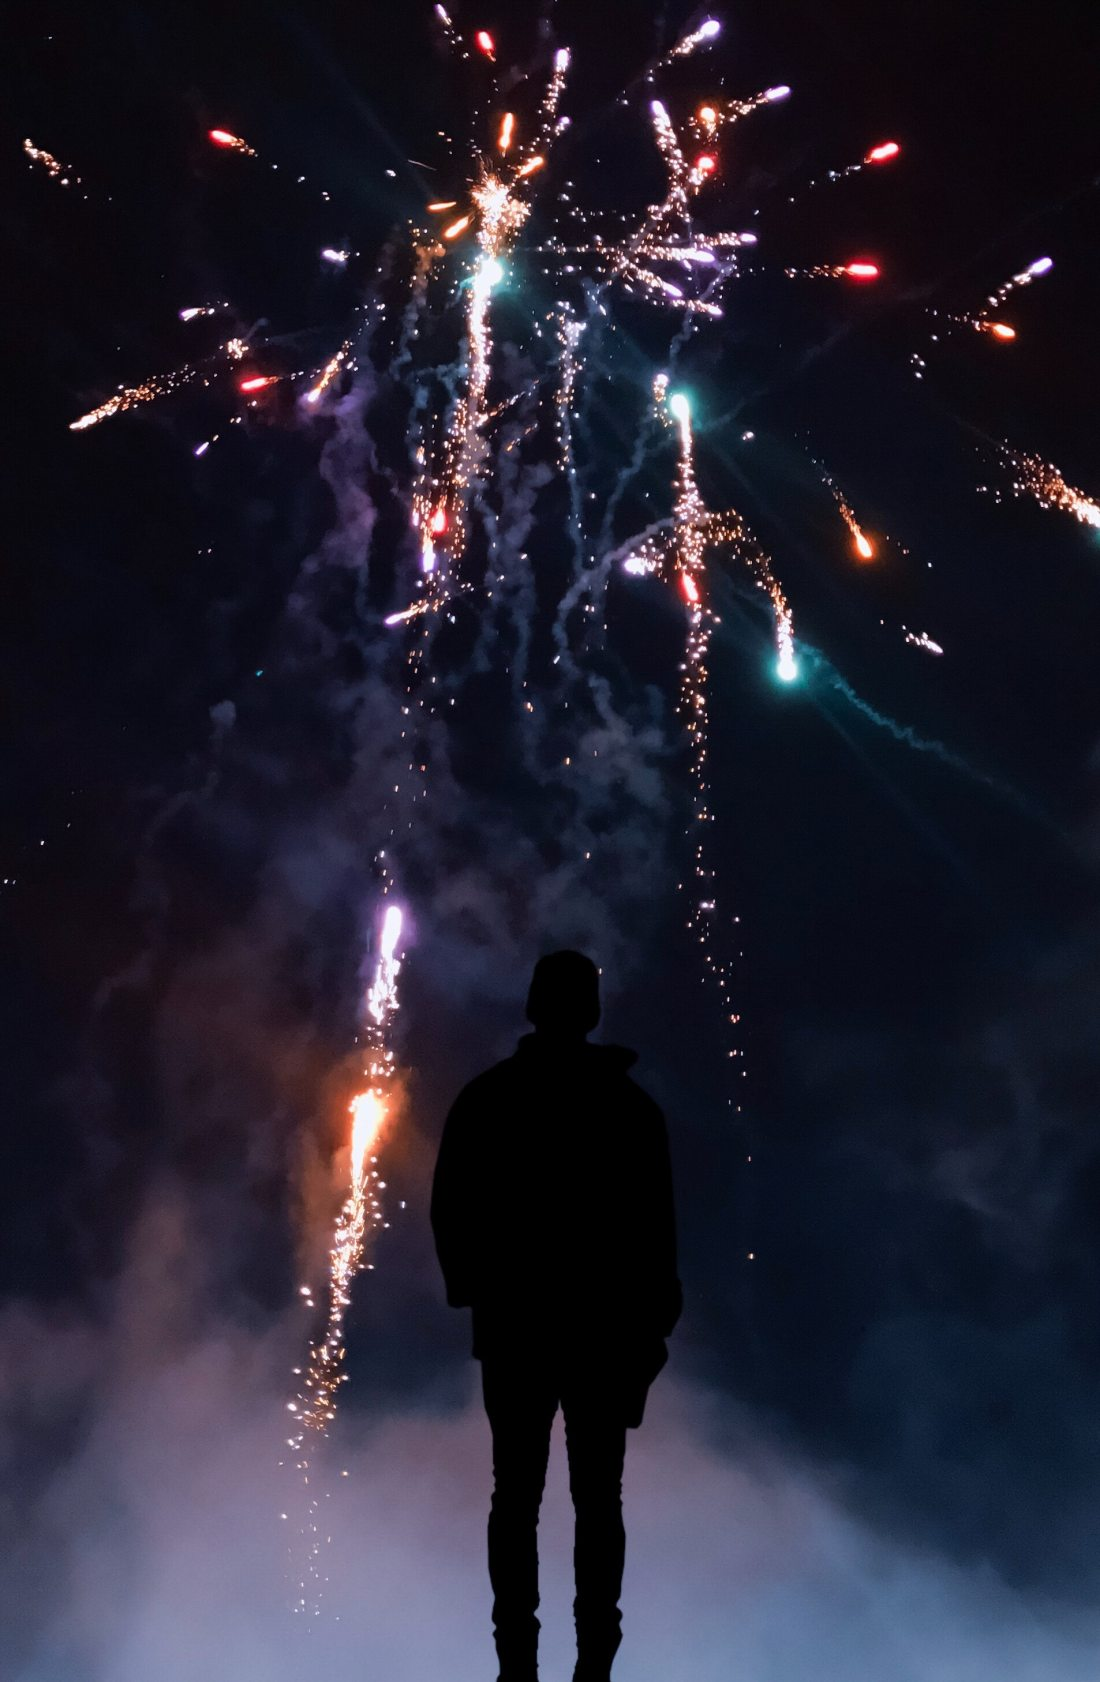 silhouette-of-person-in-front-of-fireworks-2297472